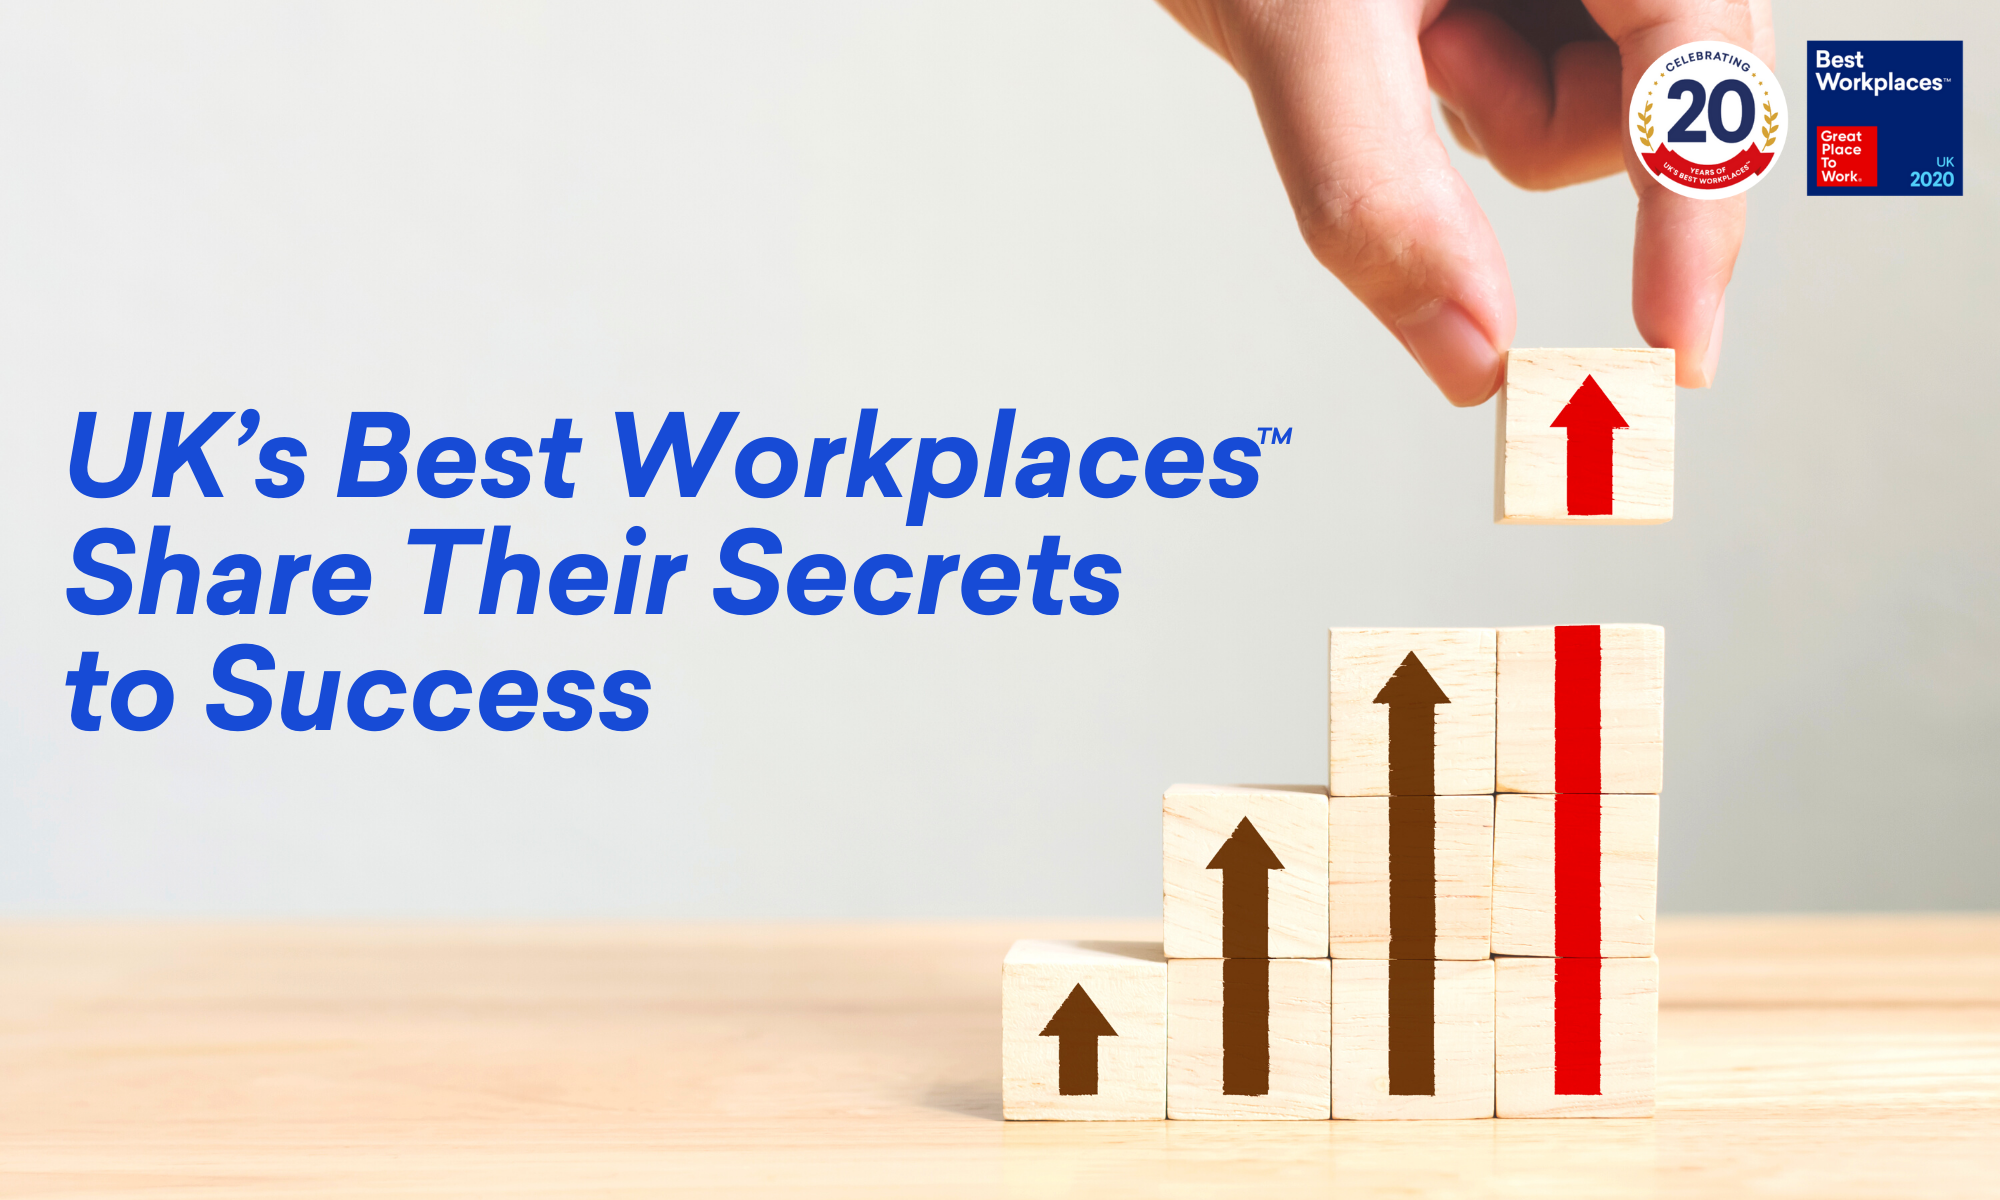 UK's Best Workplaces Share Their Secrets to Success